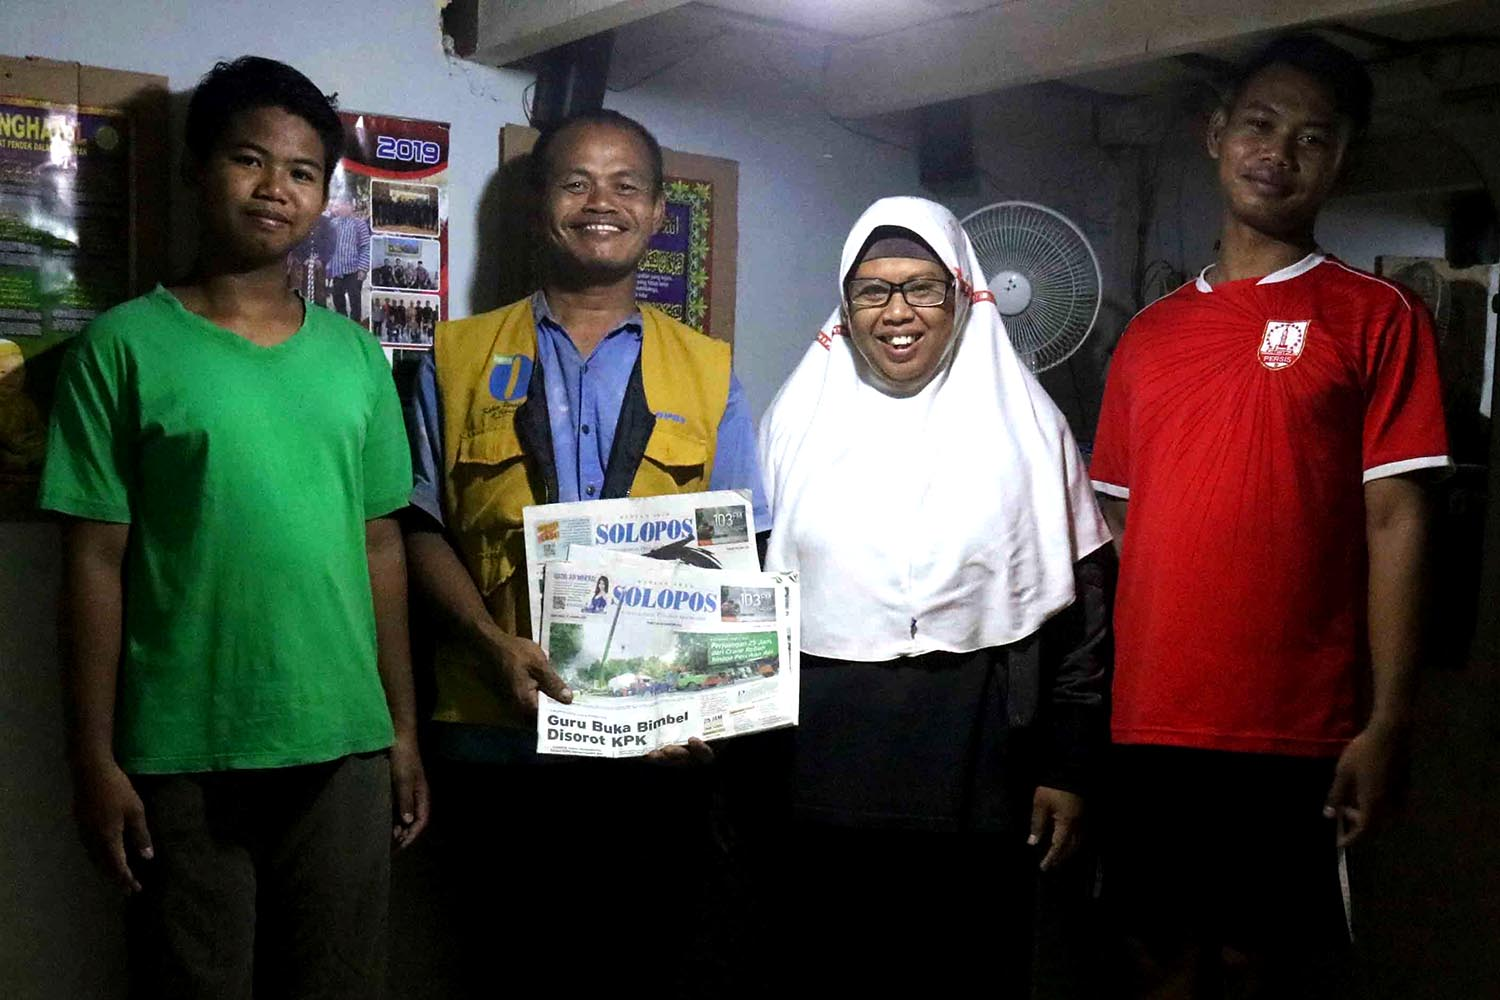 Newspaper deliveryman Sarip alongside his family. Sarip believes his job is a source of blessings for his family. JP/Maksum Nur Fauzan